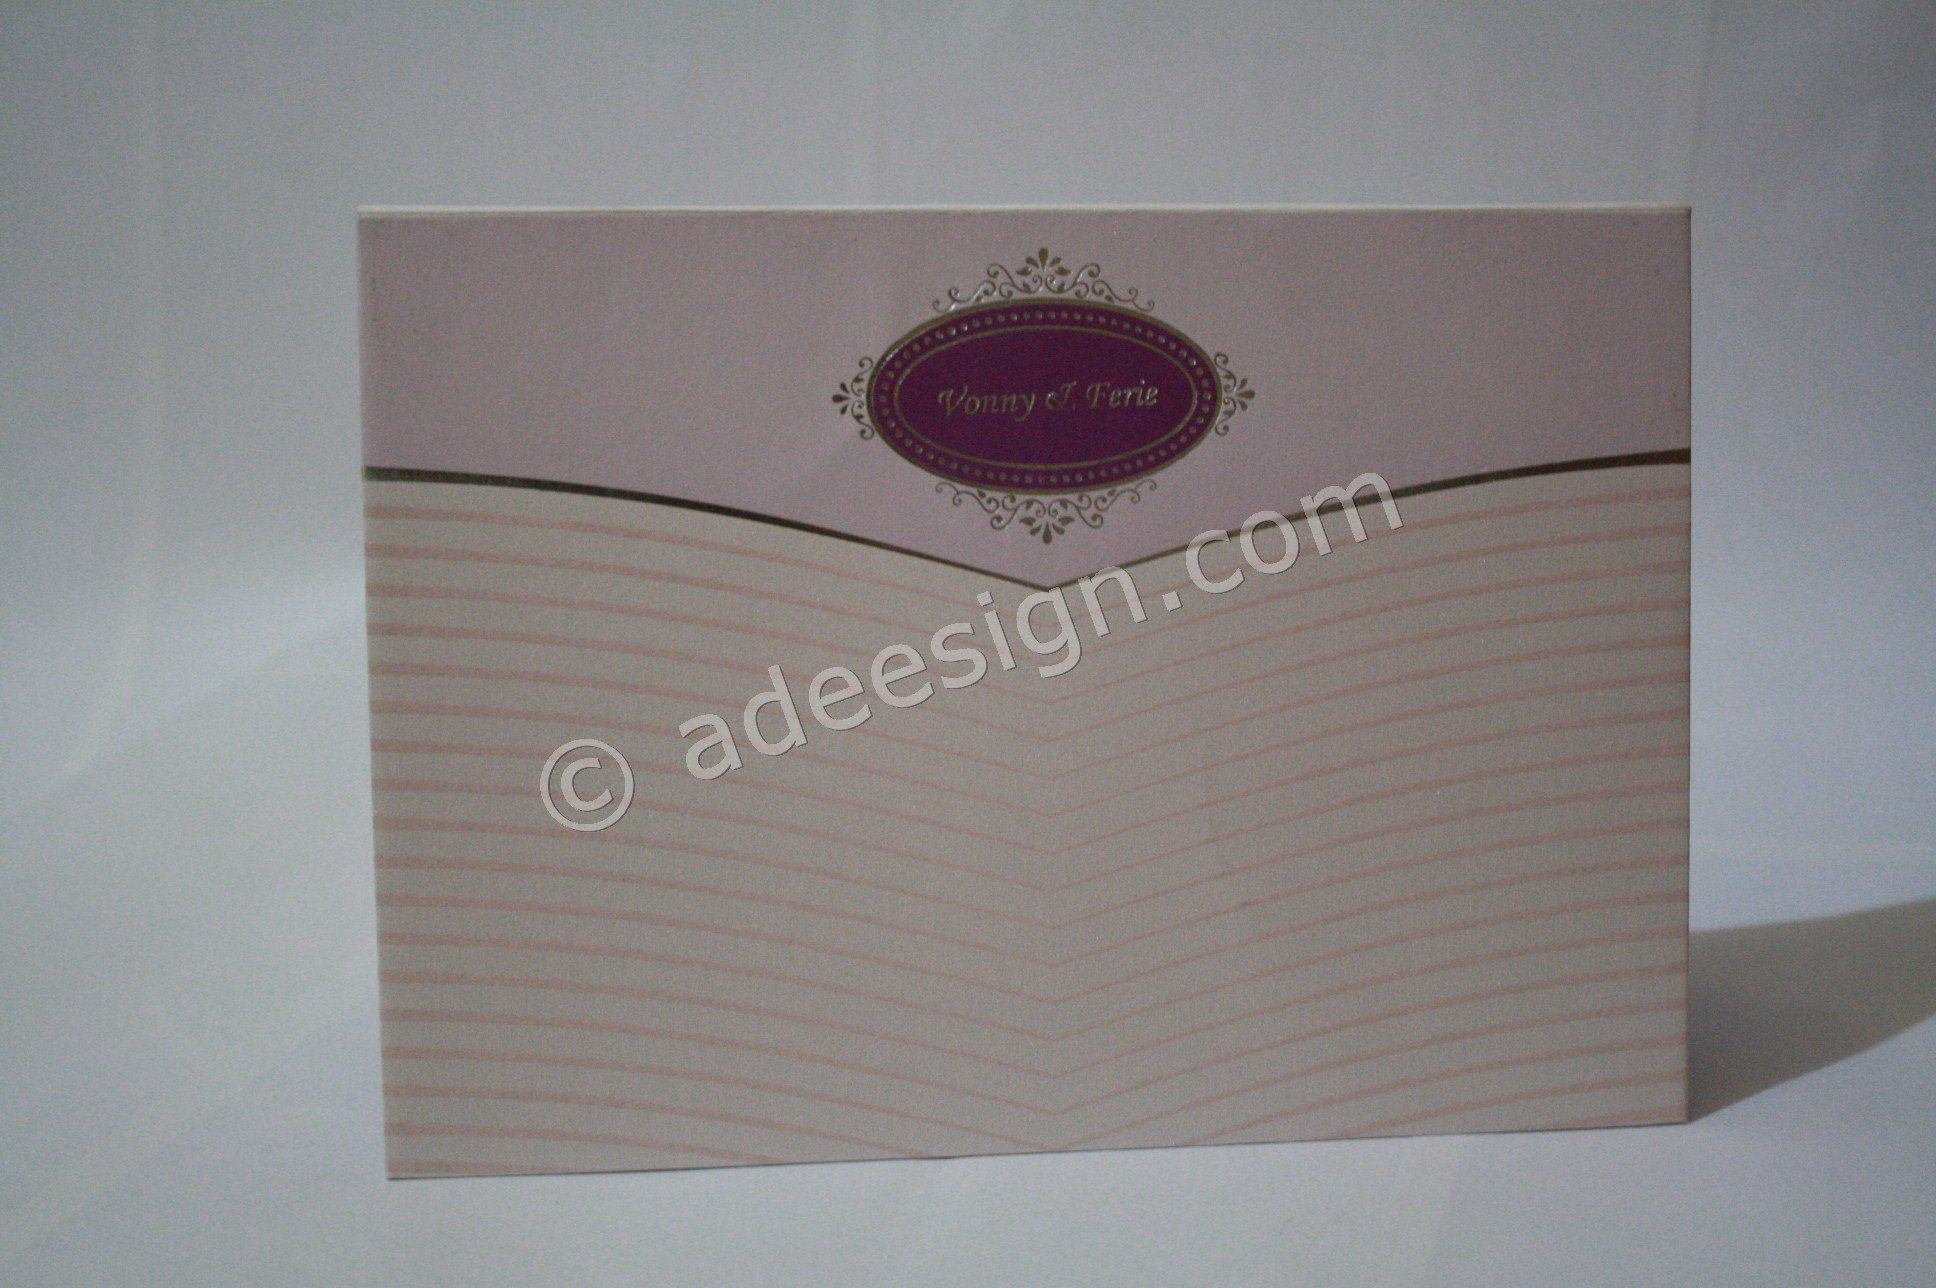 Undangan Pernikahan Hardcover Vonny dan Ferie 2 - Tips Mencetak Wedding Invitations Simple